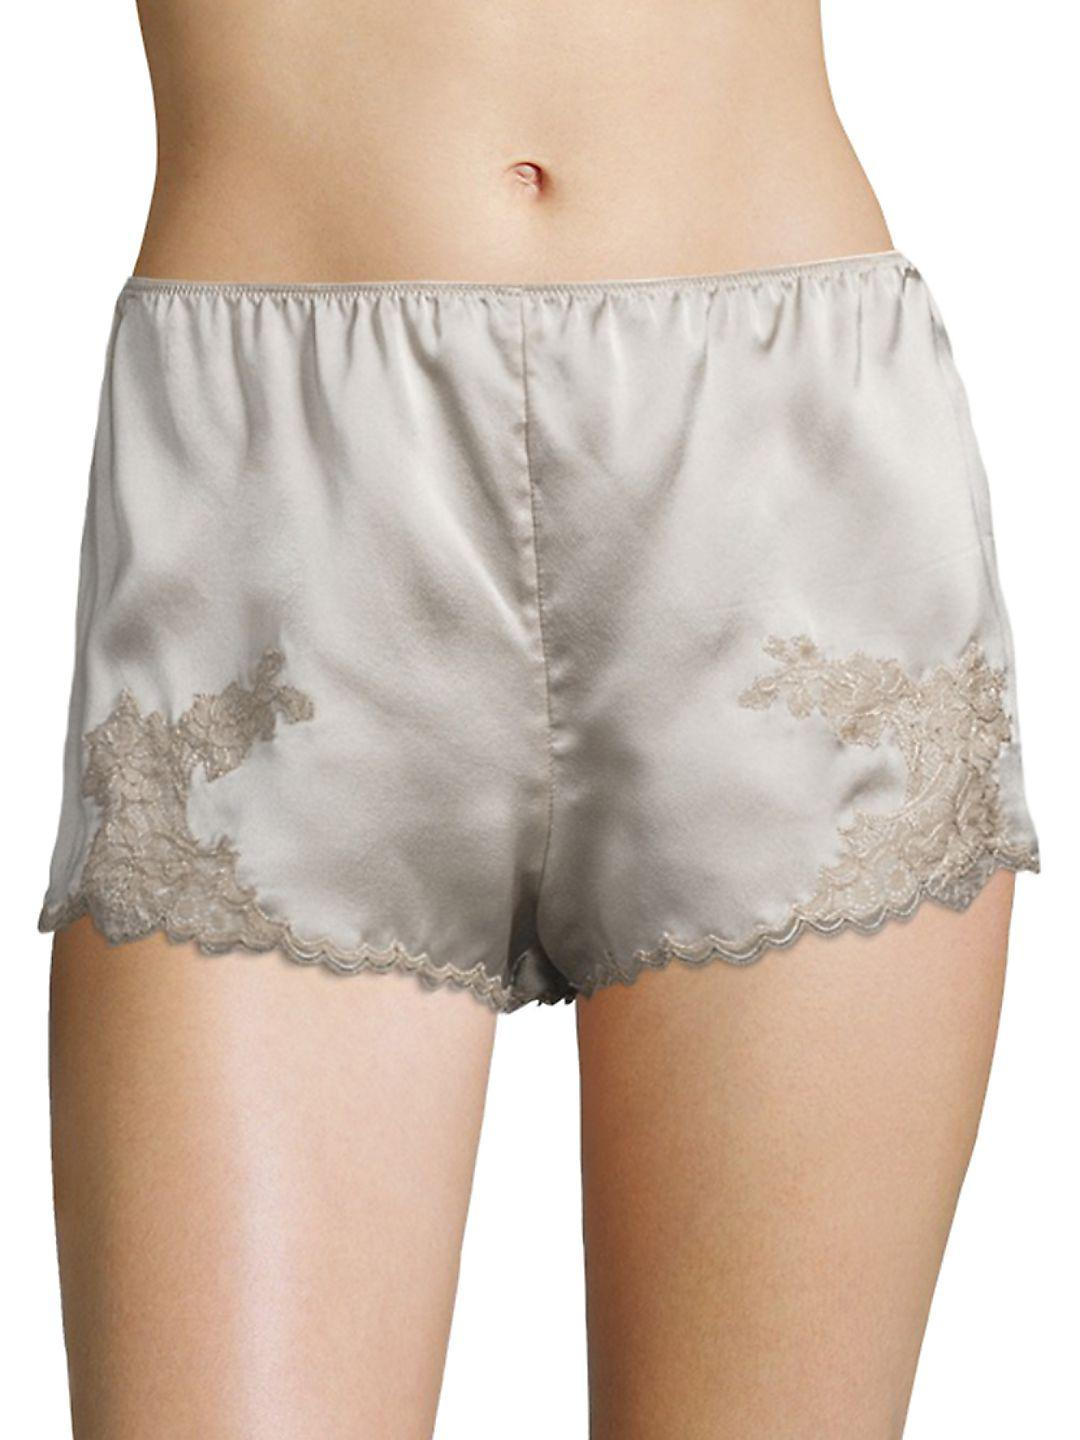 Lyst - Natori Lolita Silk Sleepwear Shorts in Gray e2d8c3d47